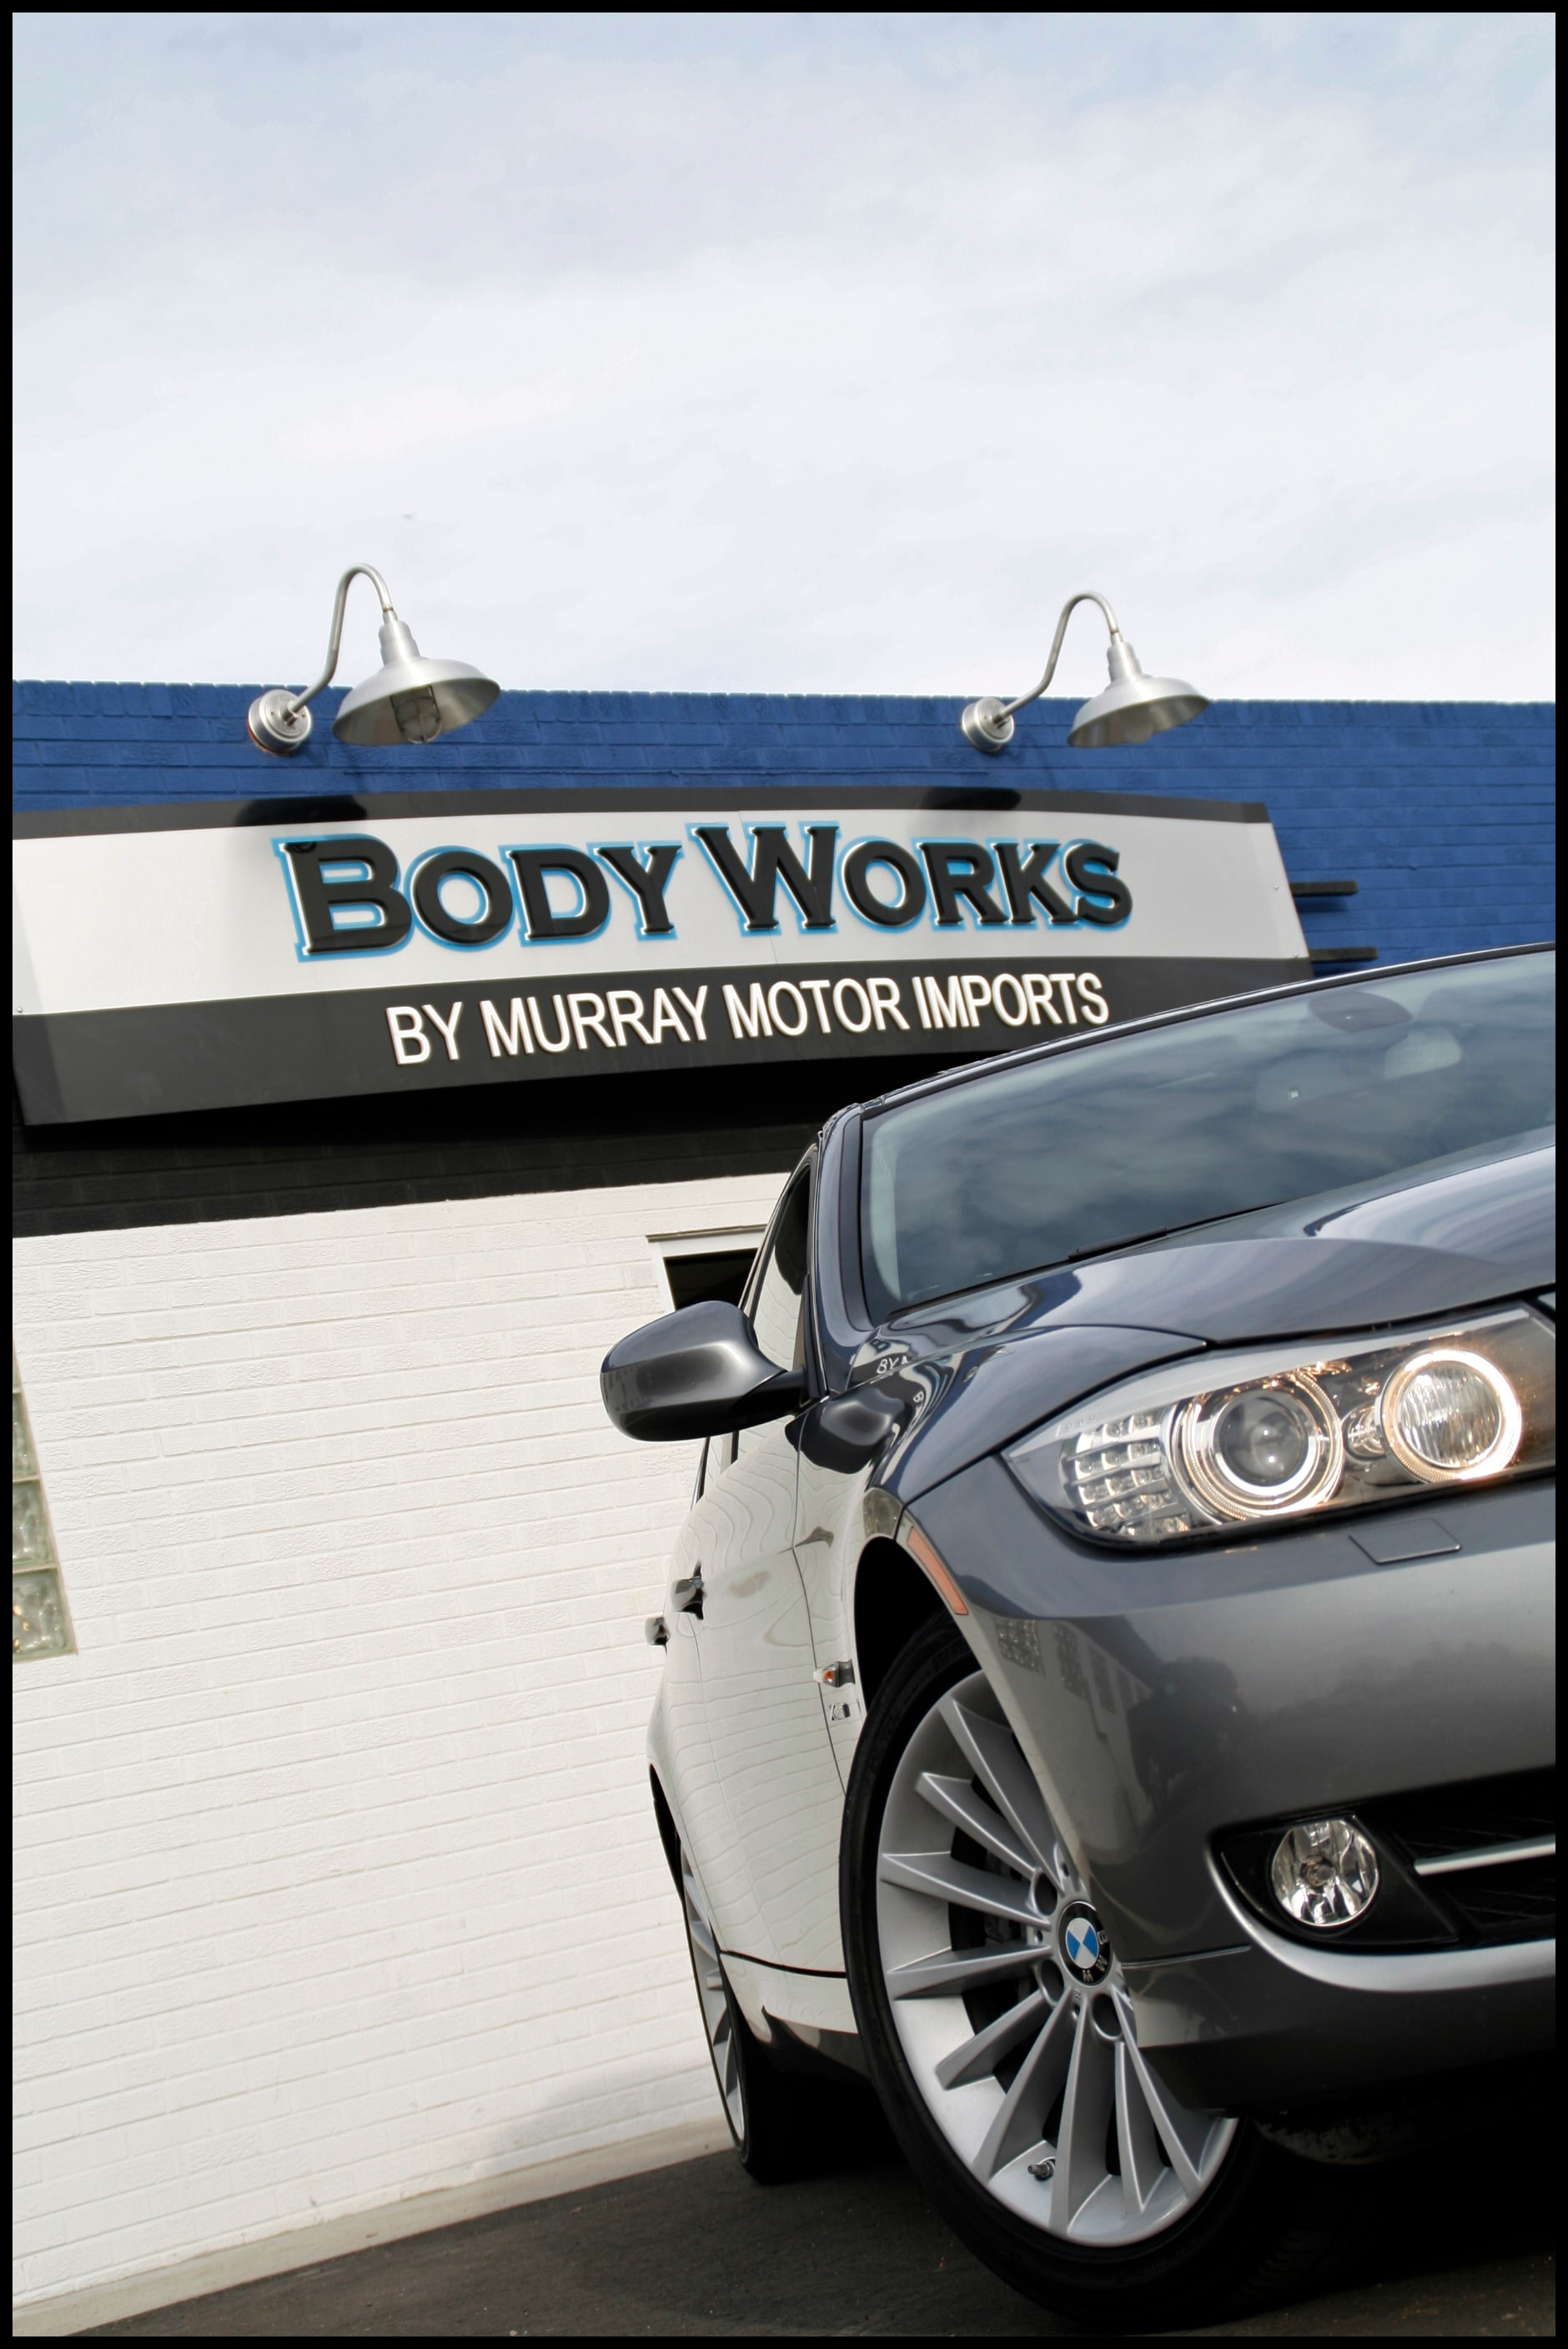 Bodyworks by Murray Motor Imports is proud to announce the finest in auto body and collision repair at our factory authorized body shop